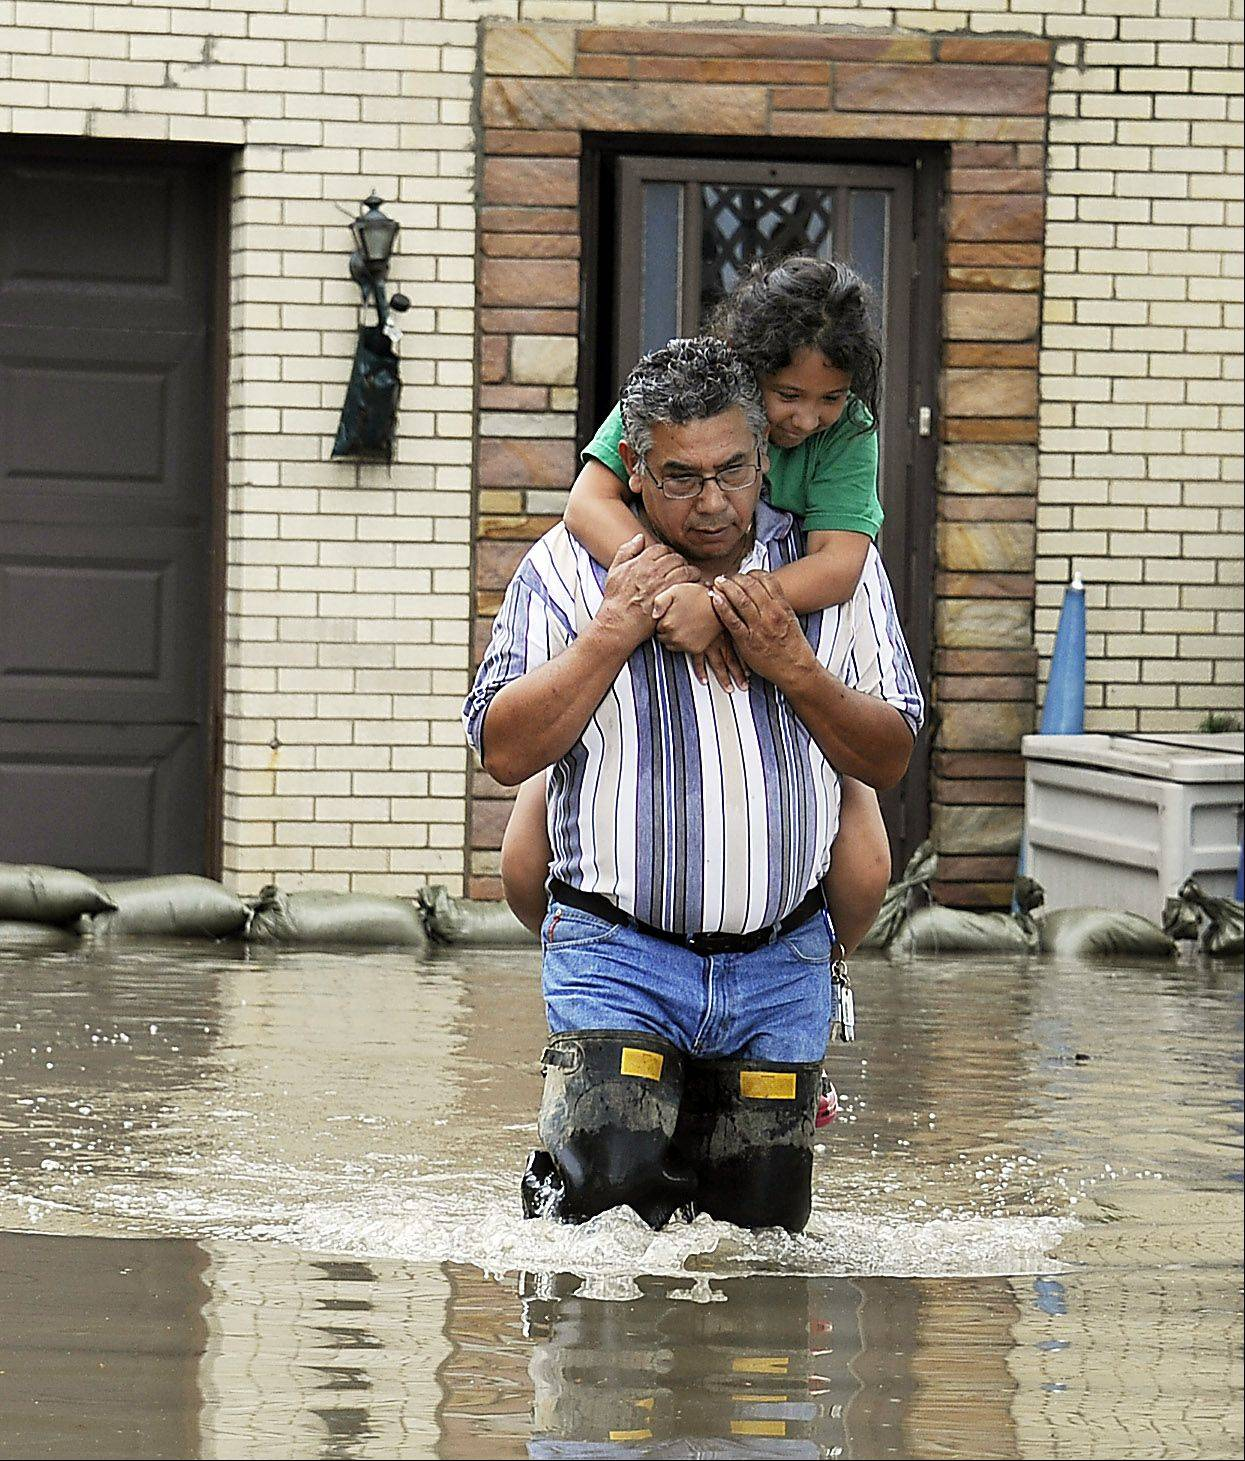 Juan Corona carries his granddaughter Delanee Hernandez, 9, on his back from her flooded house in Wheeling after storms dumped over five inches of water on the area.